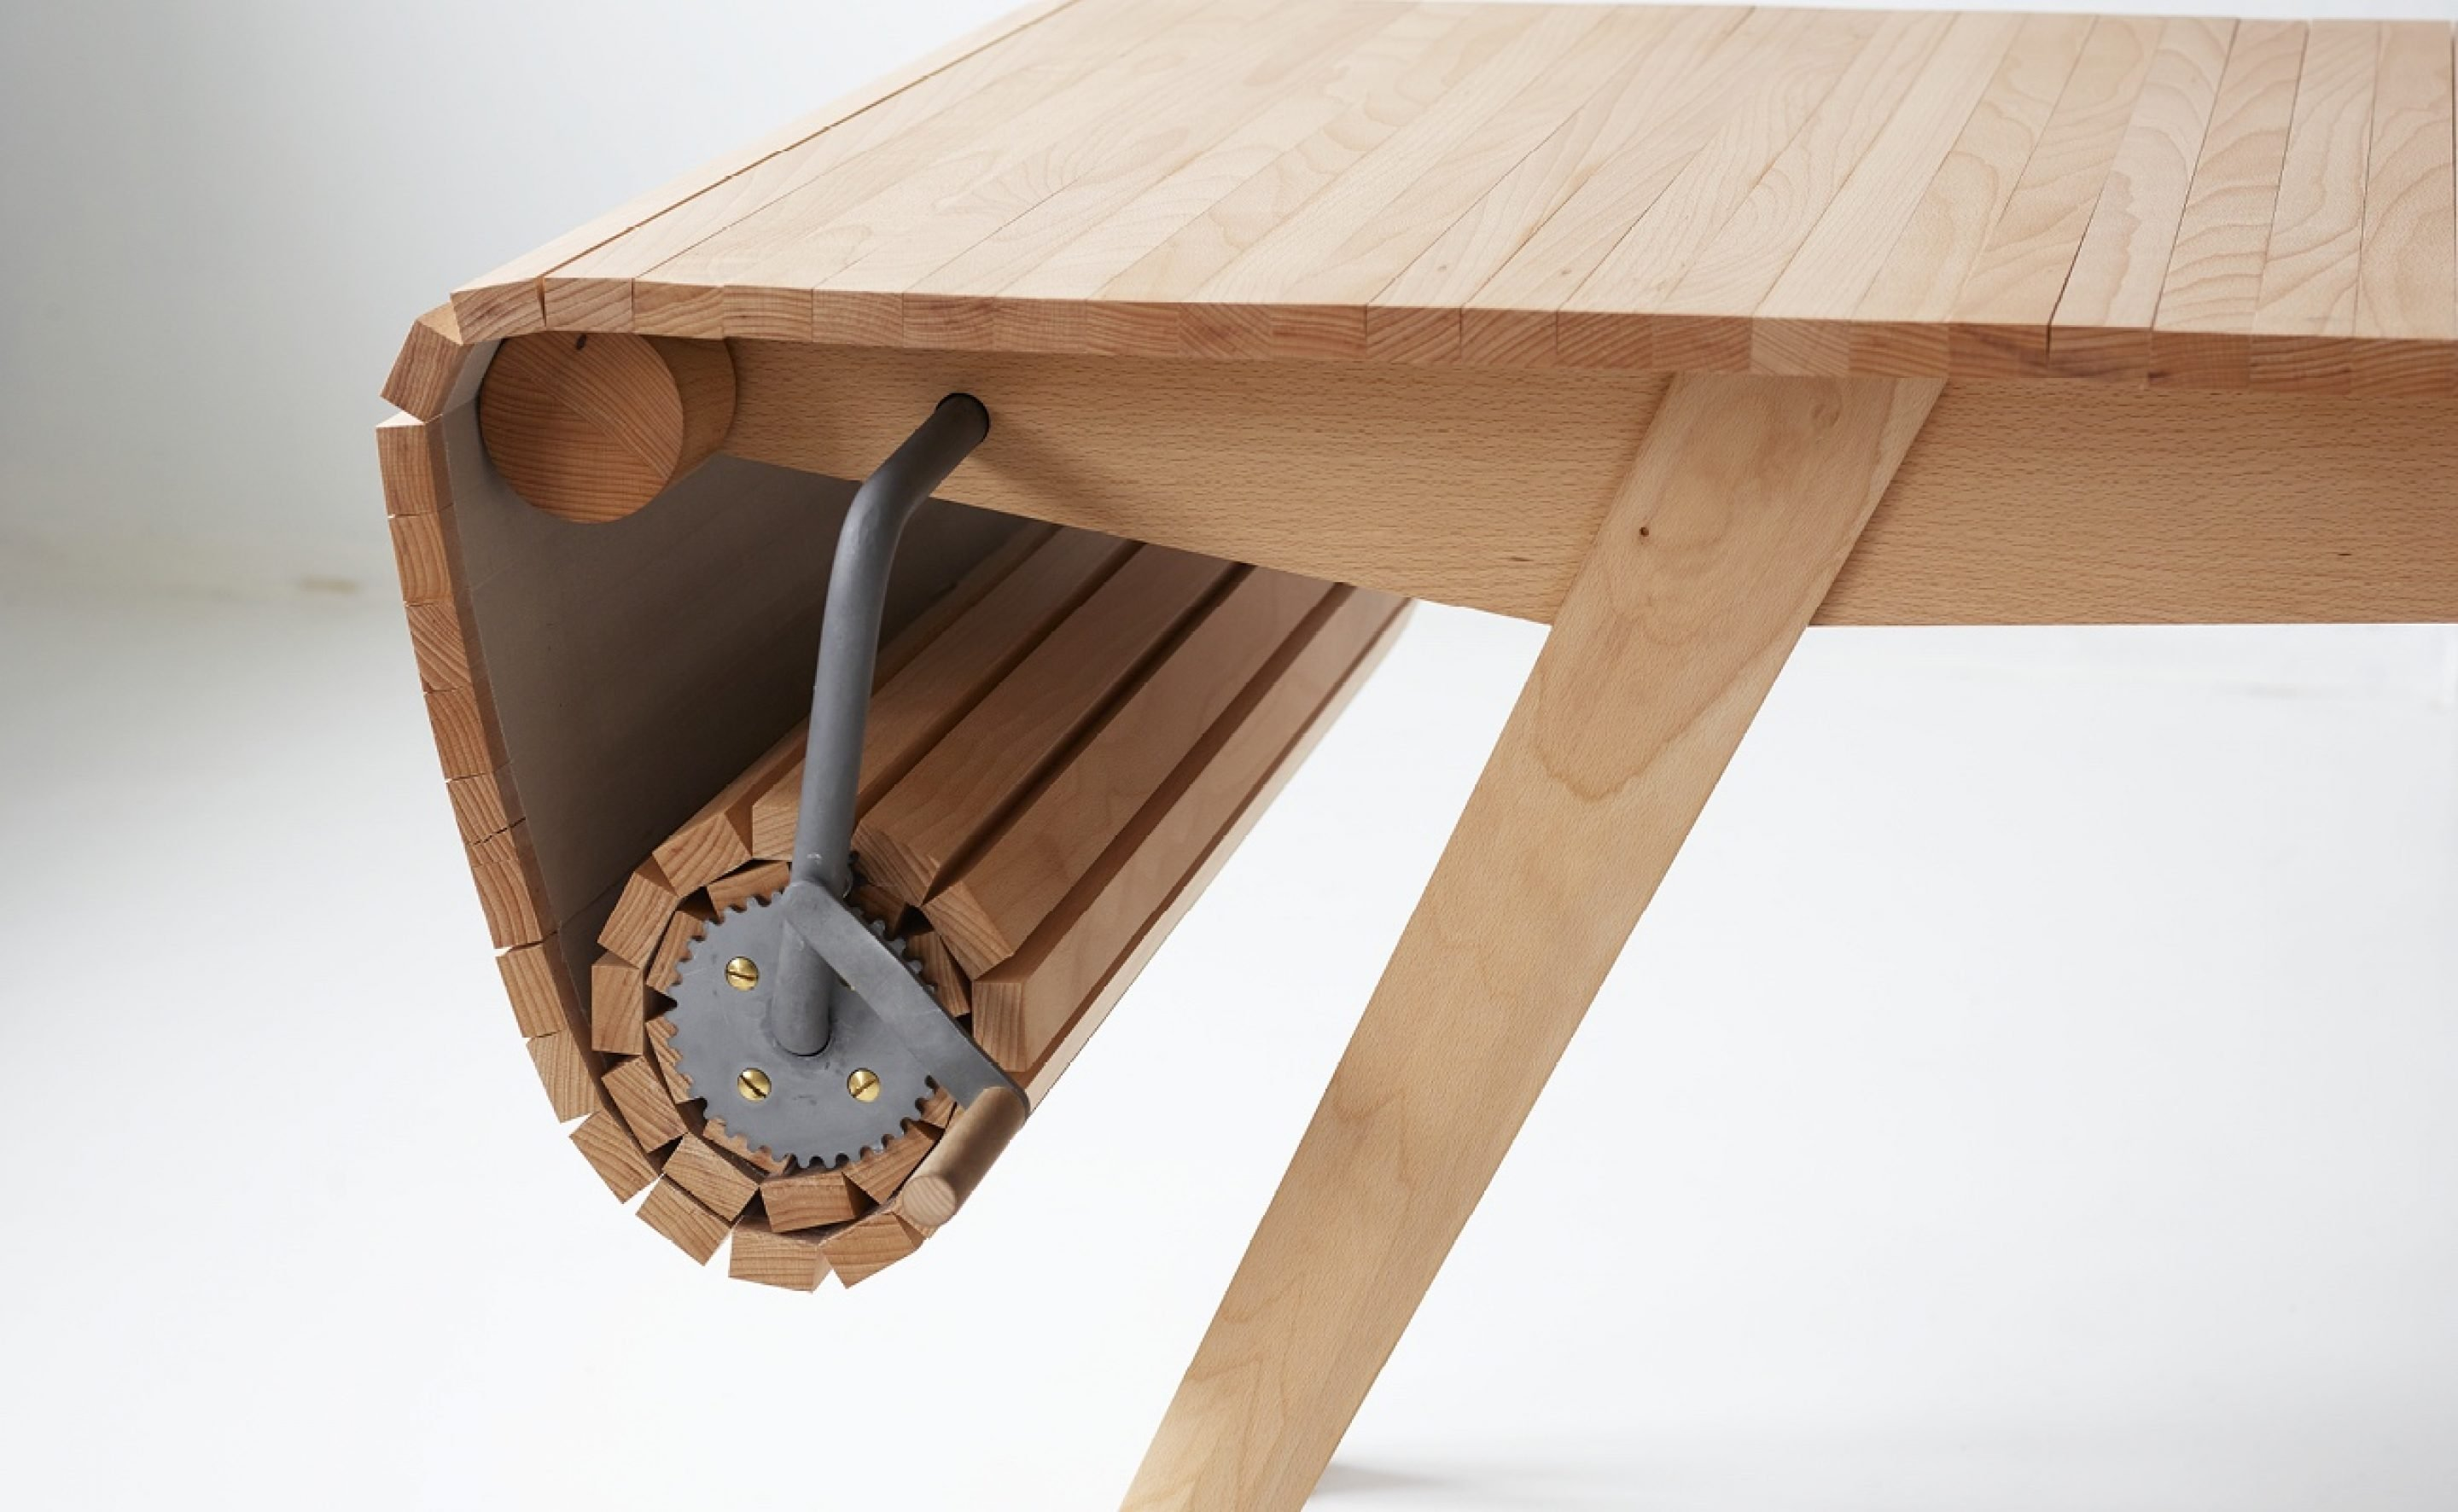 Design_Roll-out_Table_Marcus_Voraa_IGNANT_3